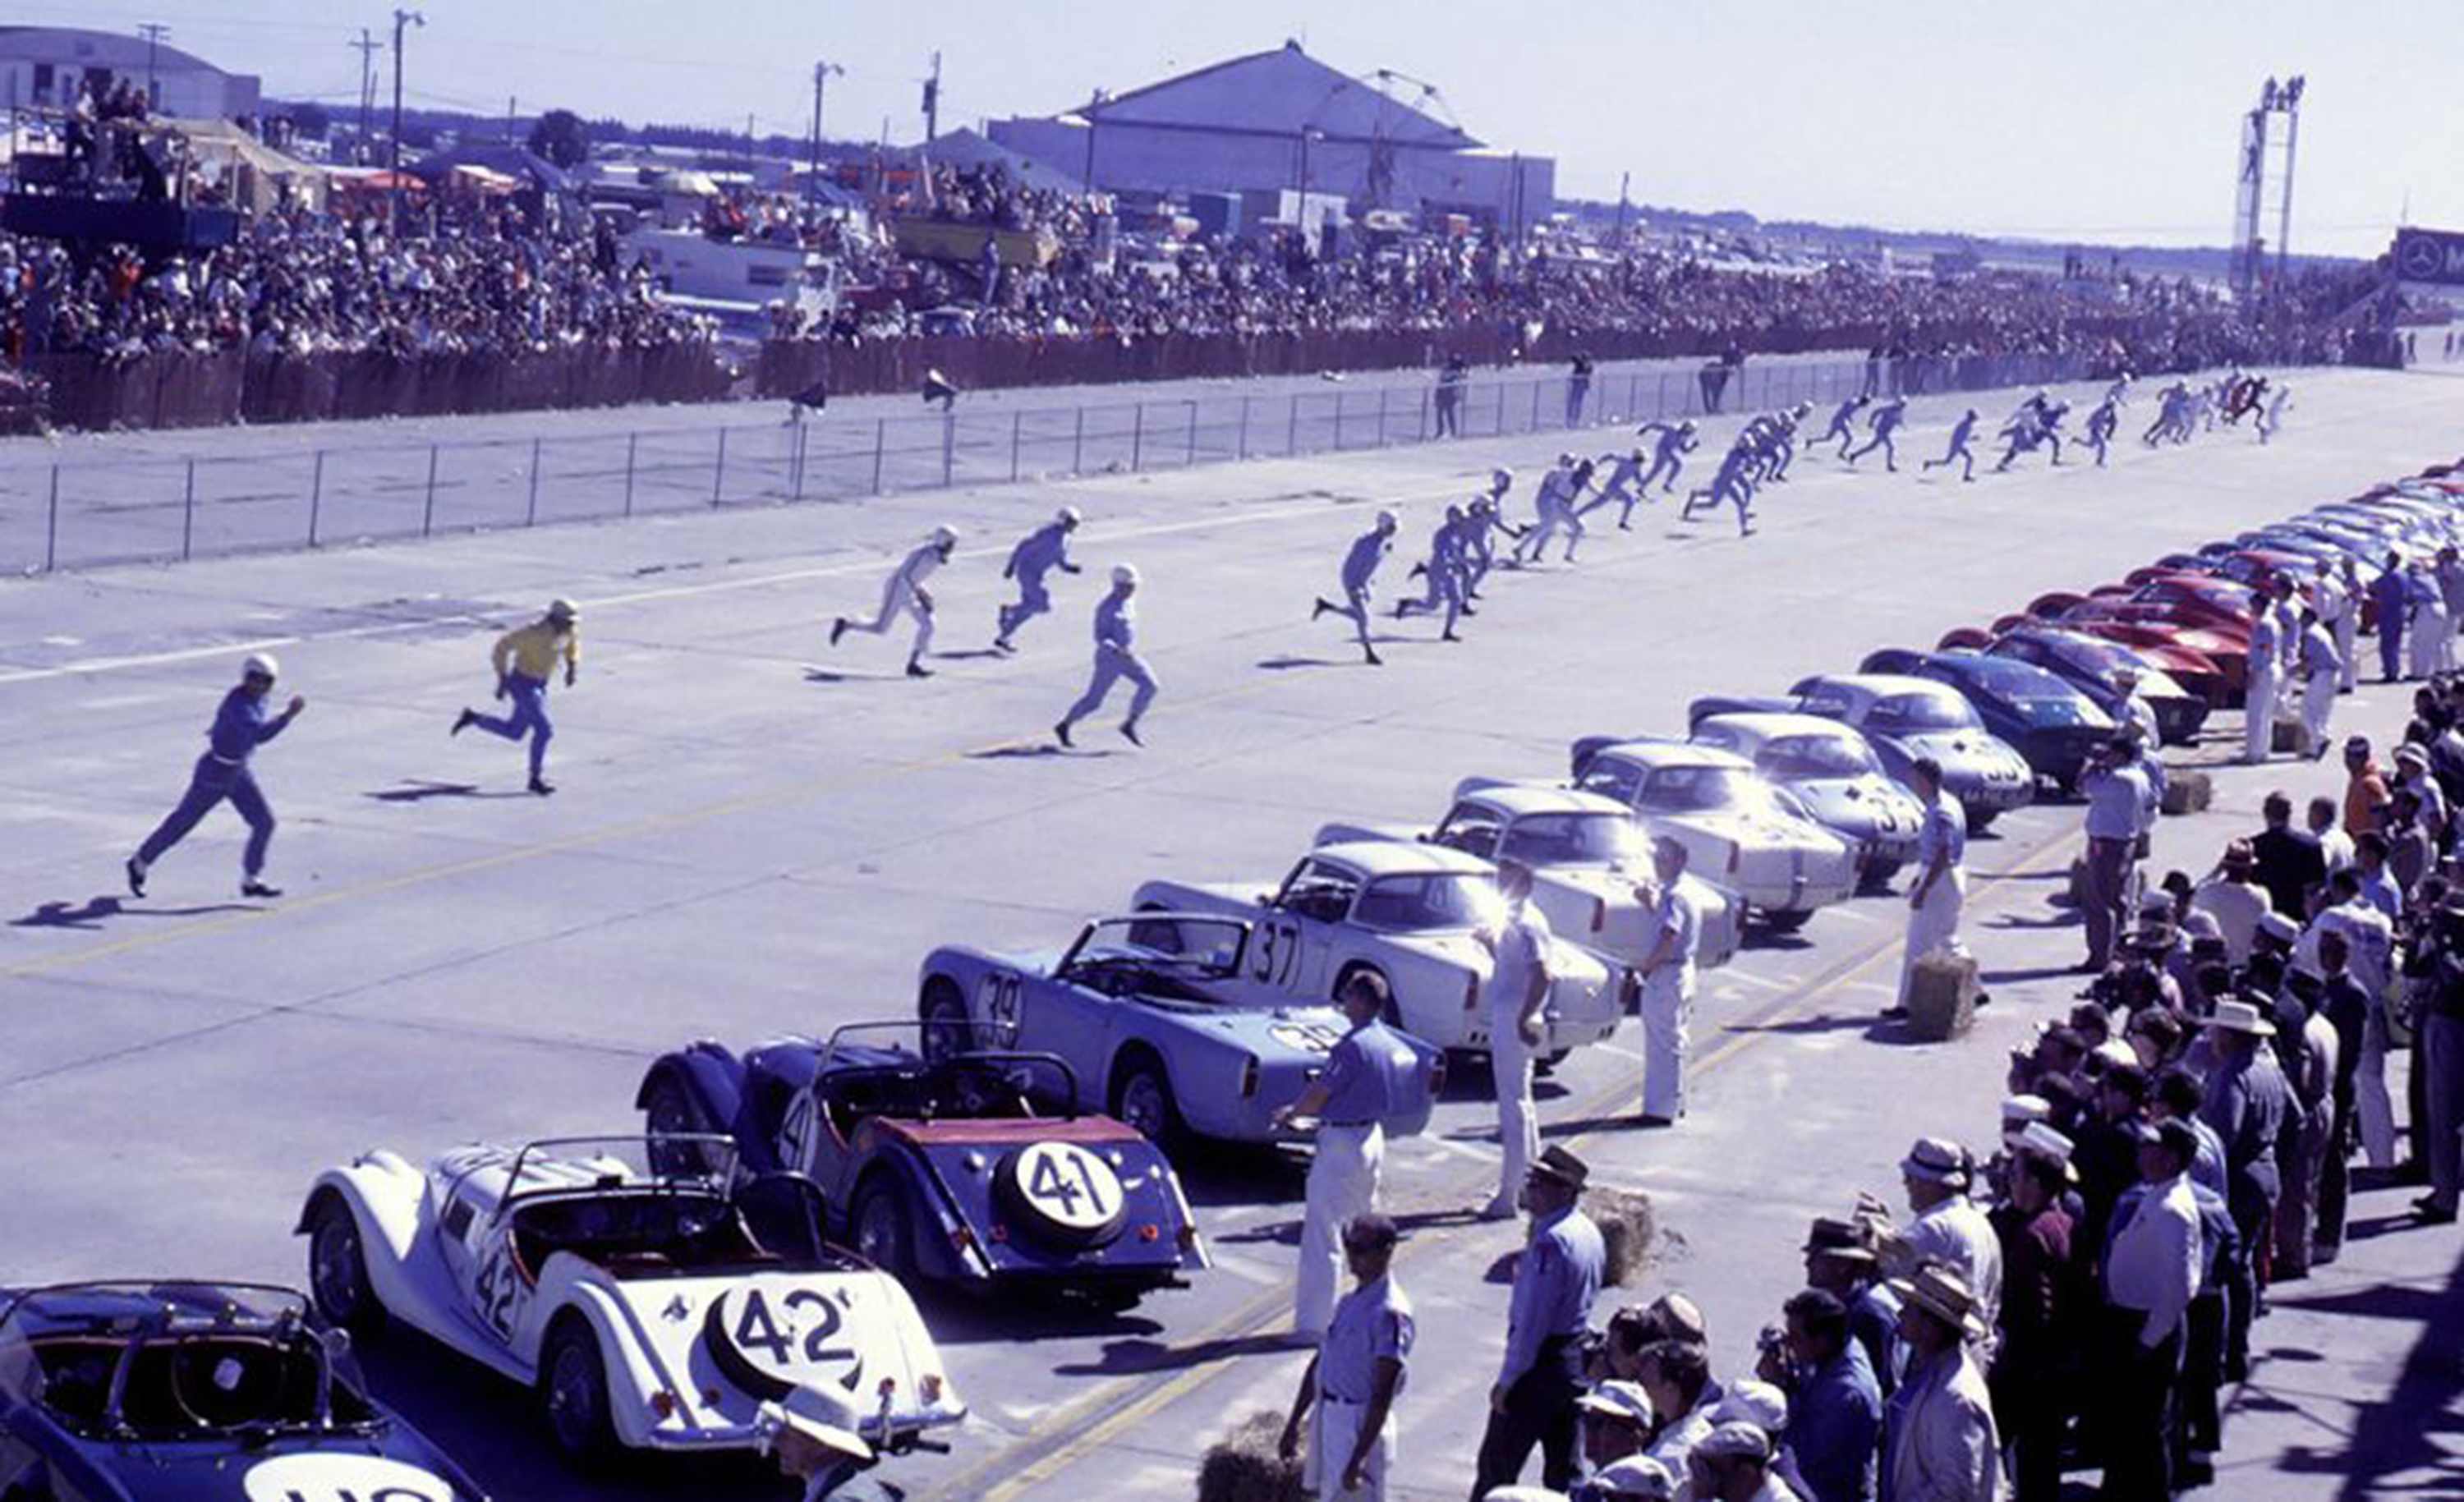 1963 Sebring 12-Hour Grand Prix of Endurance - Le Mans start